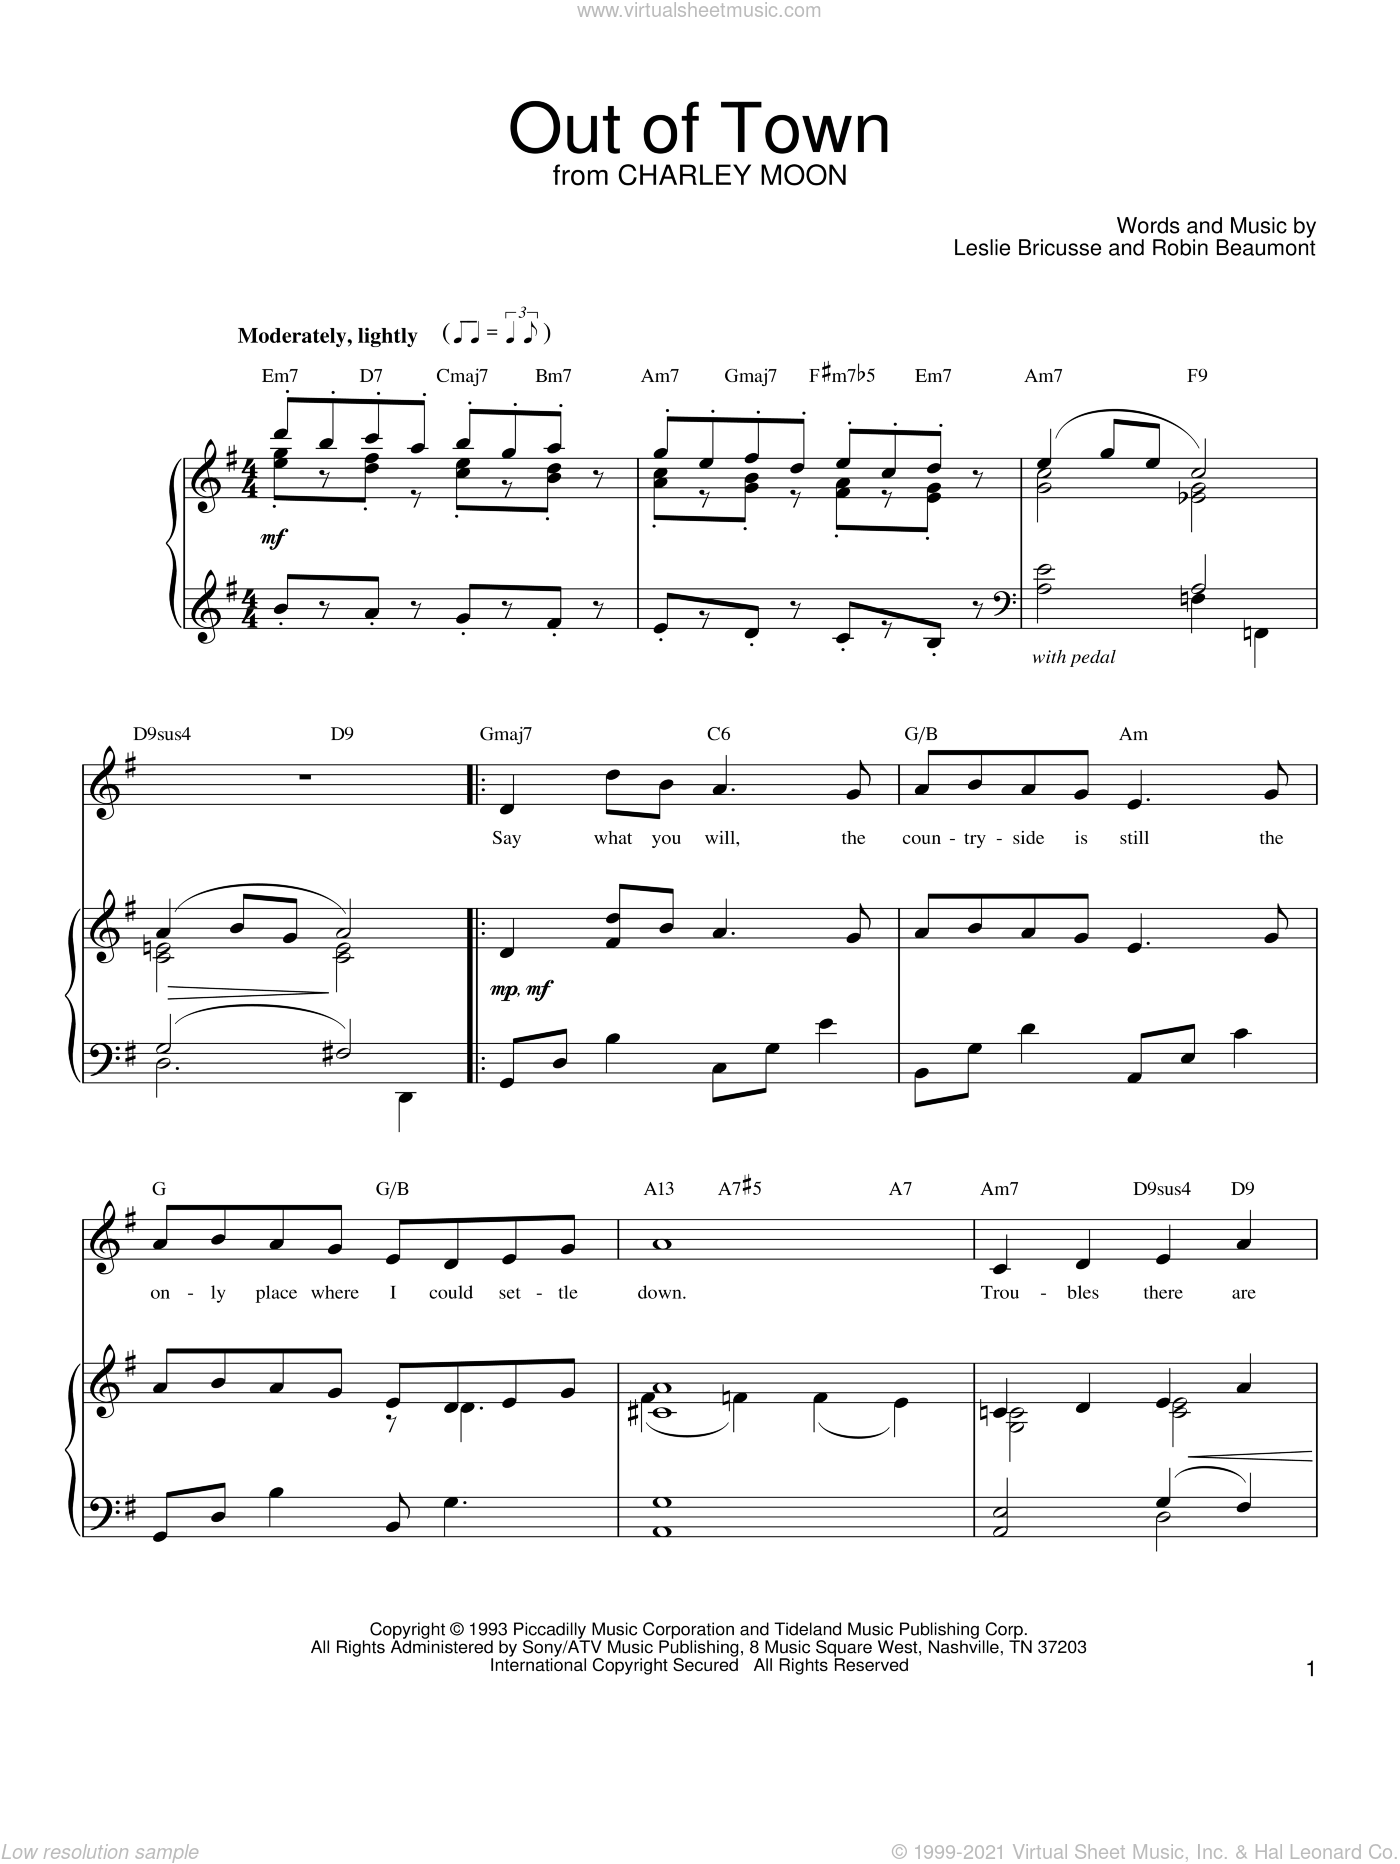 Out Of Town sheet music for voice, piano or guitar by Robin Beaumont